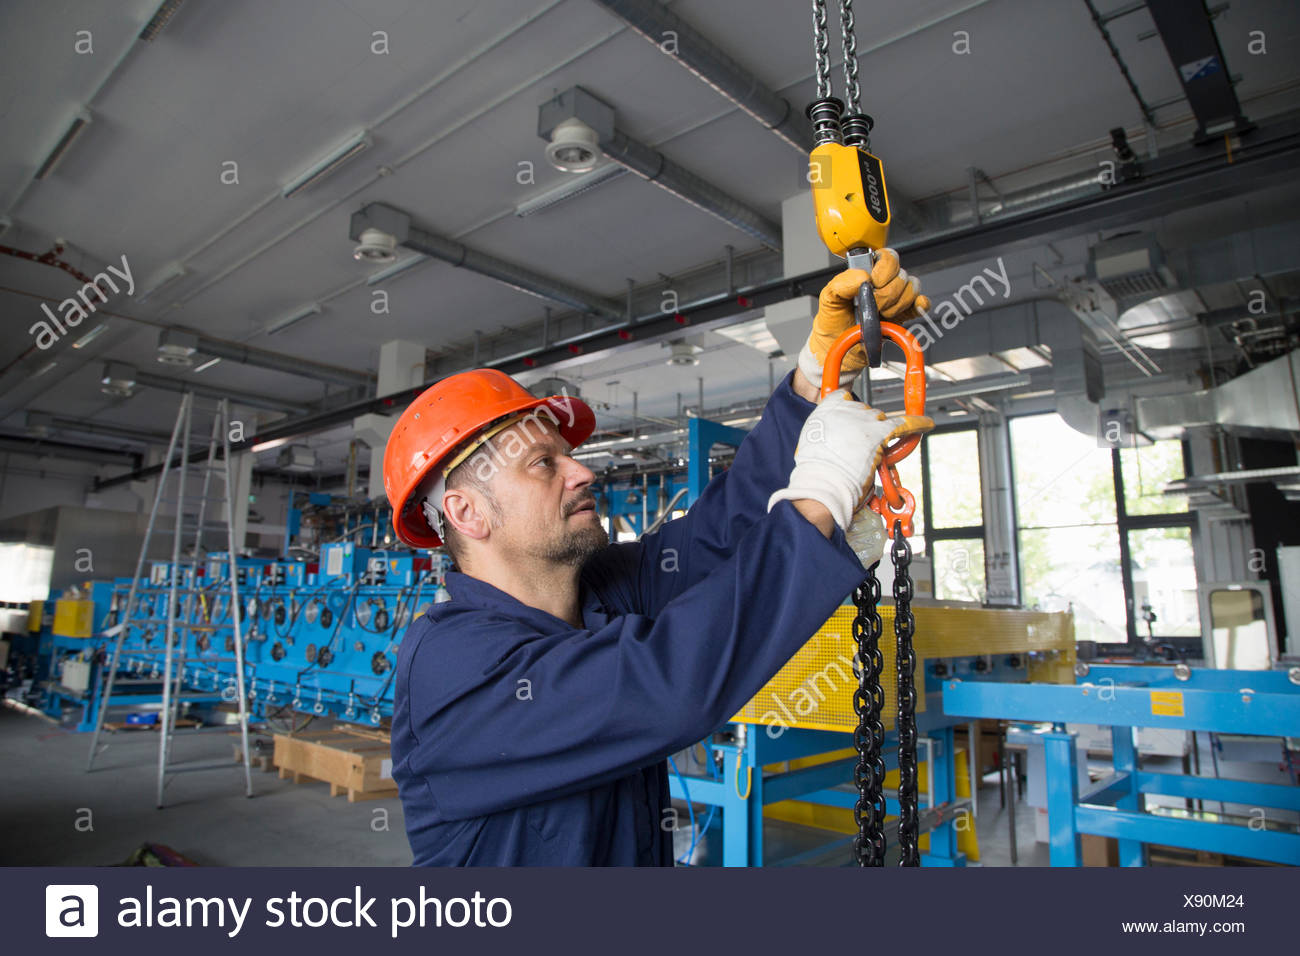 Worker adjusting chain hoist in industrial plant Stock Photo